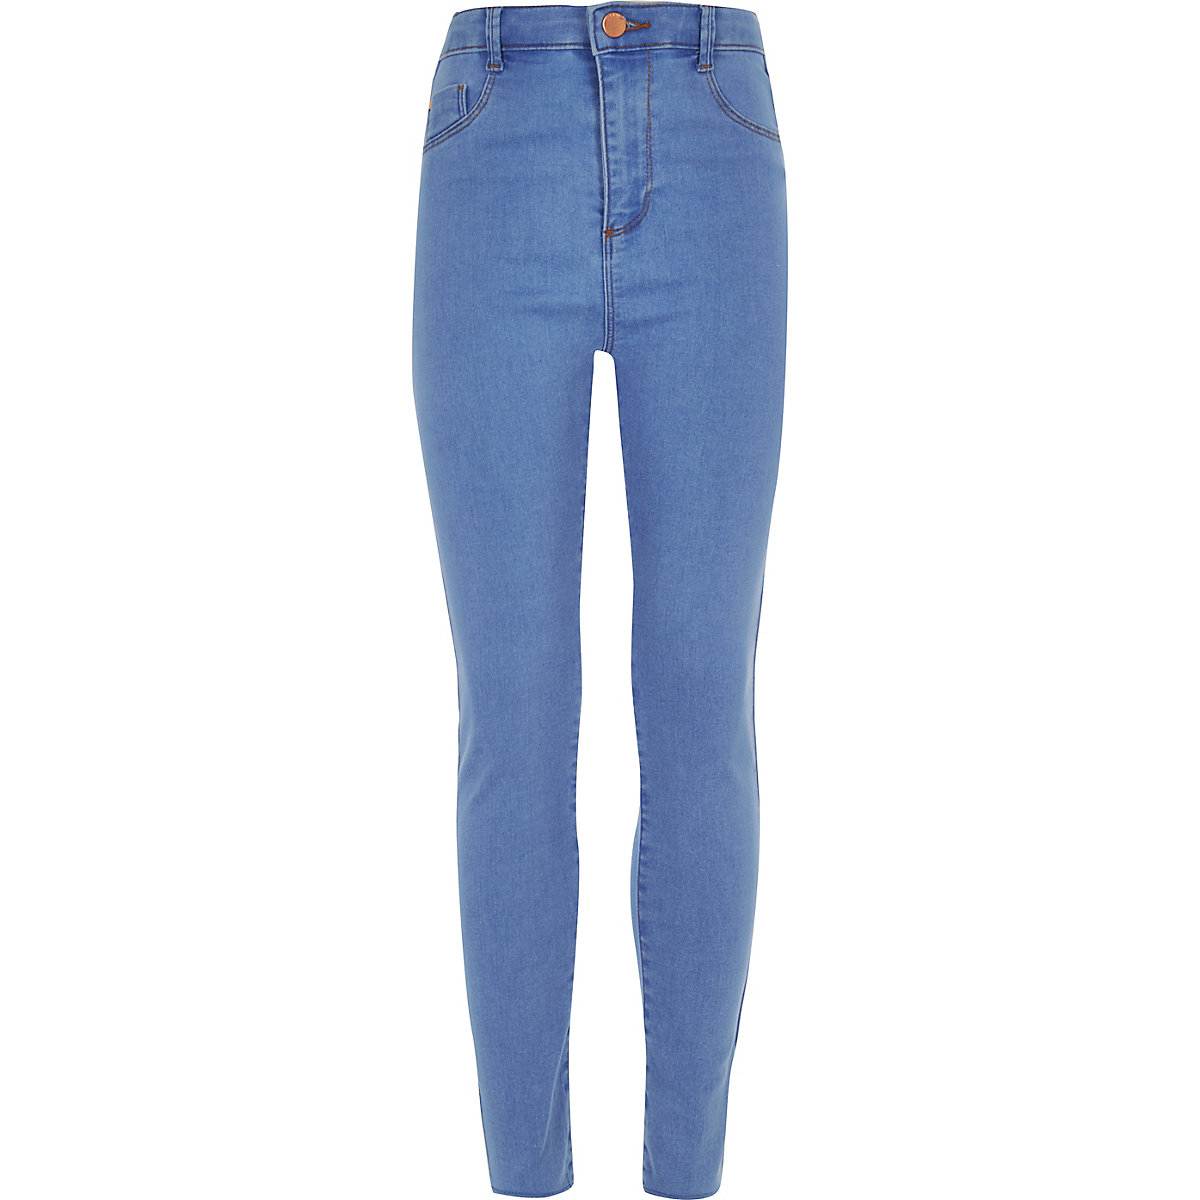 Girls blue Molly high waisted jeggings